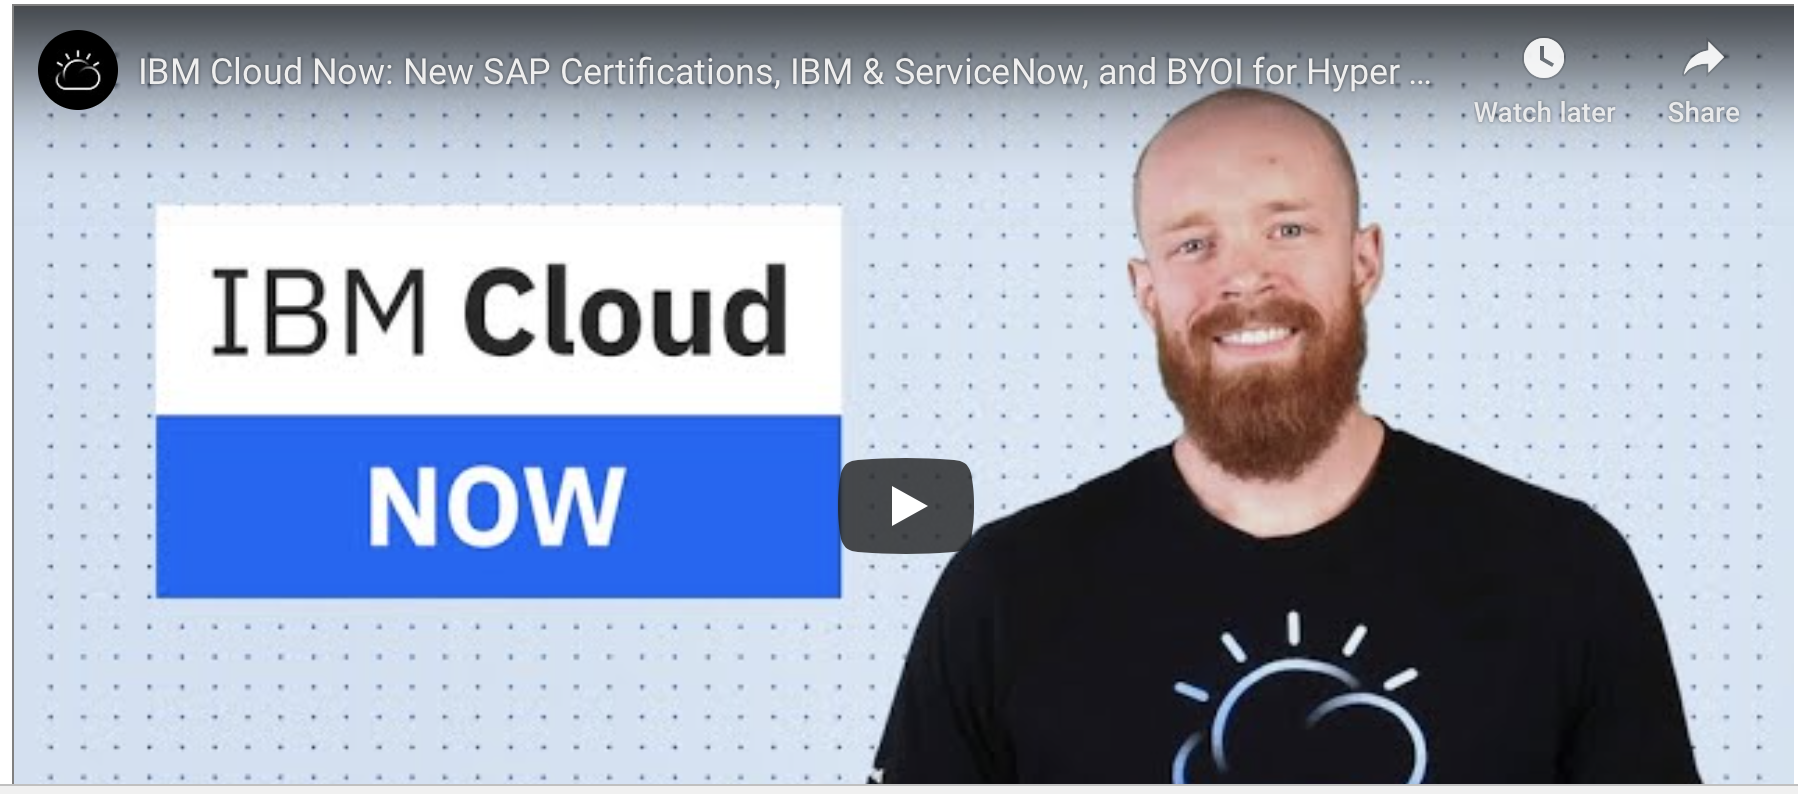 IBM Cloud Now video opening screen shot